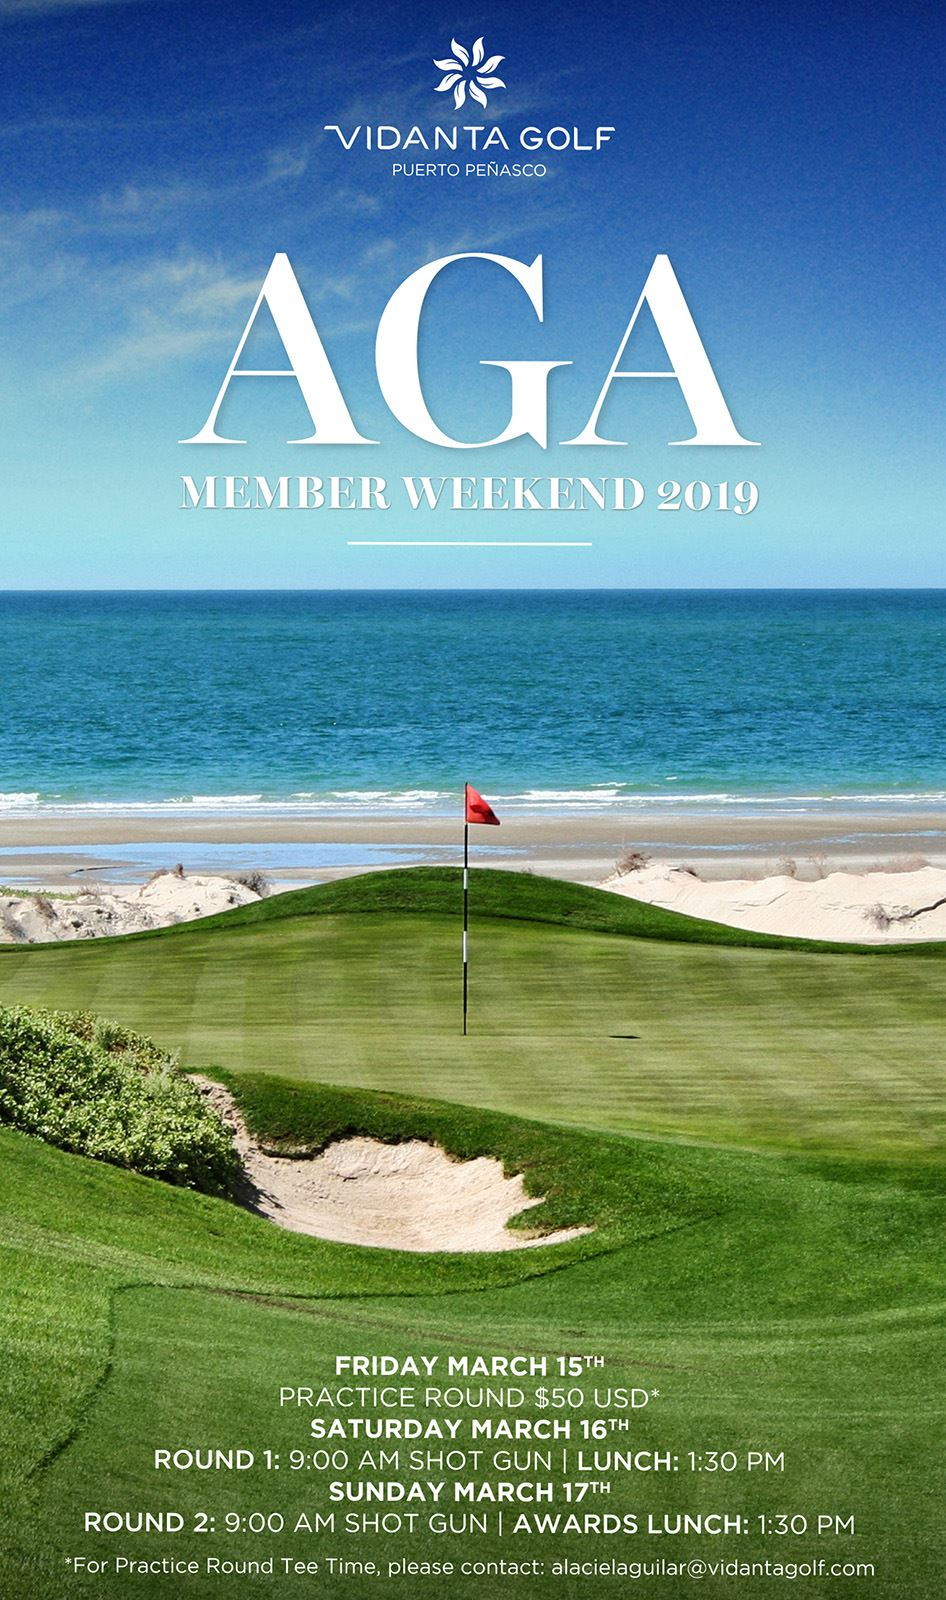 AGA-Member-Weekend-19 AGA Member Weekend 2019!